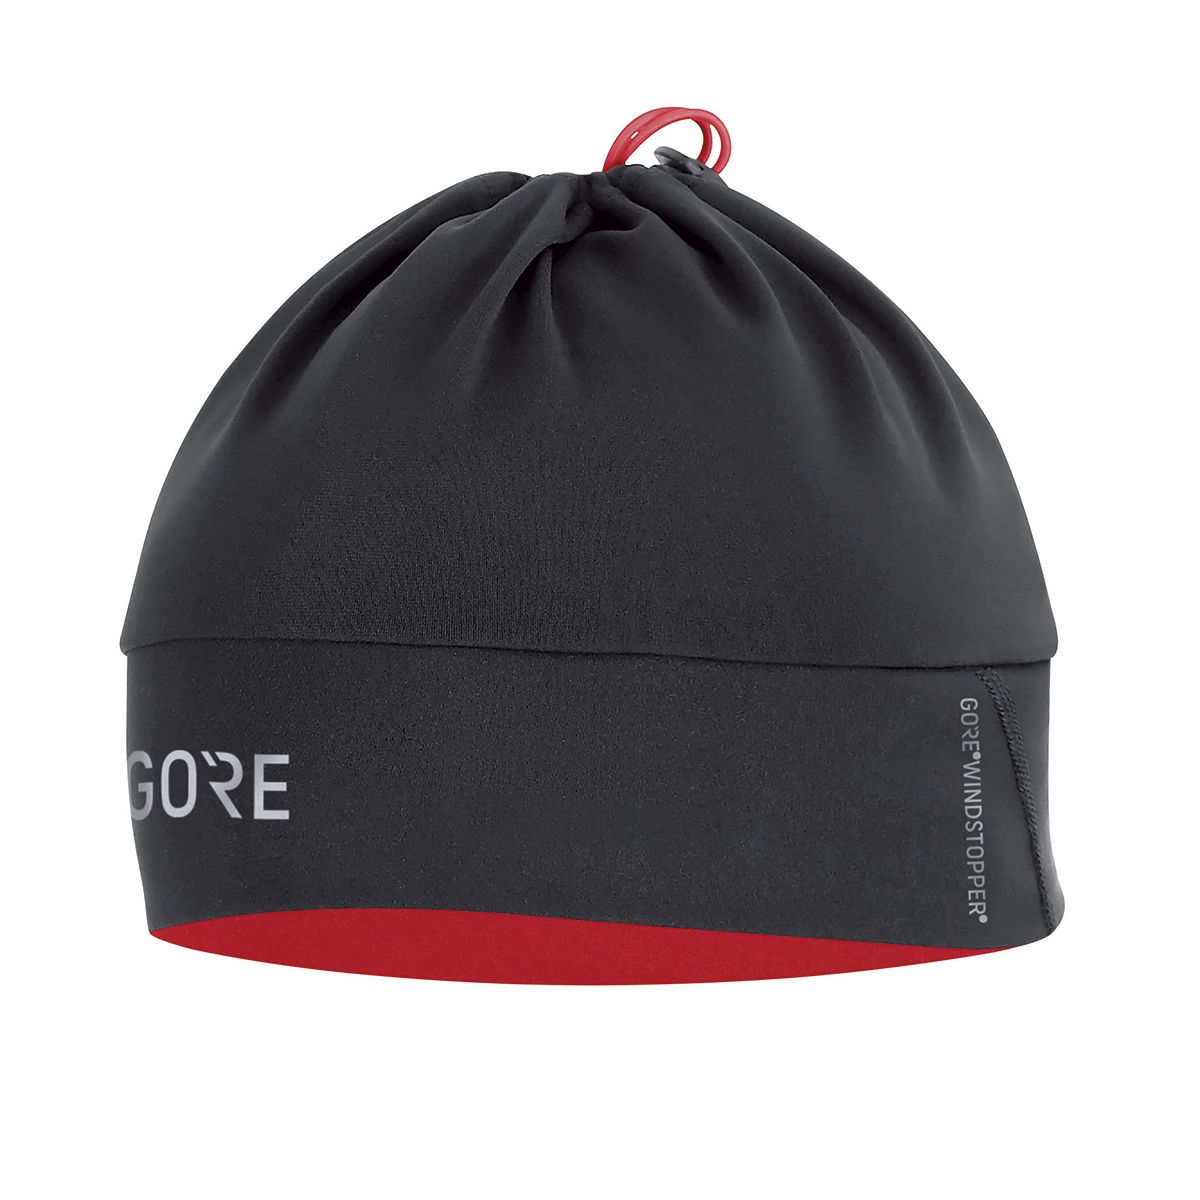 GORE WEAR M GORE WINDSTOPPER NECKWARMER bandana | Headwear